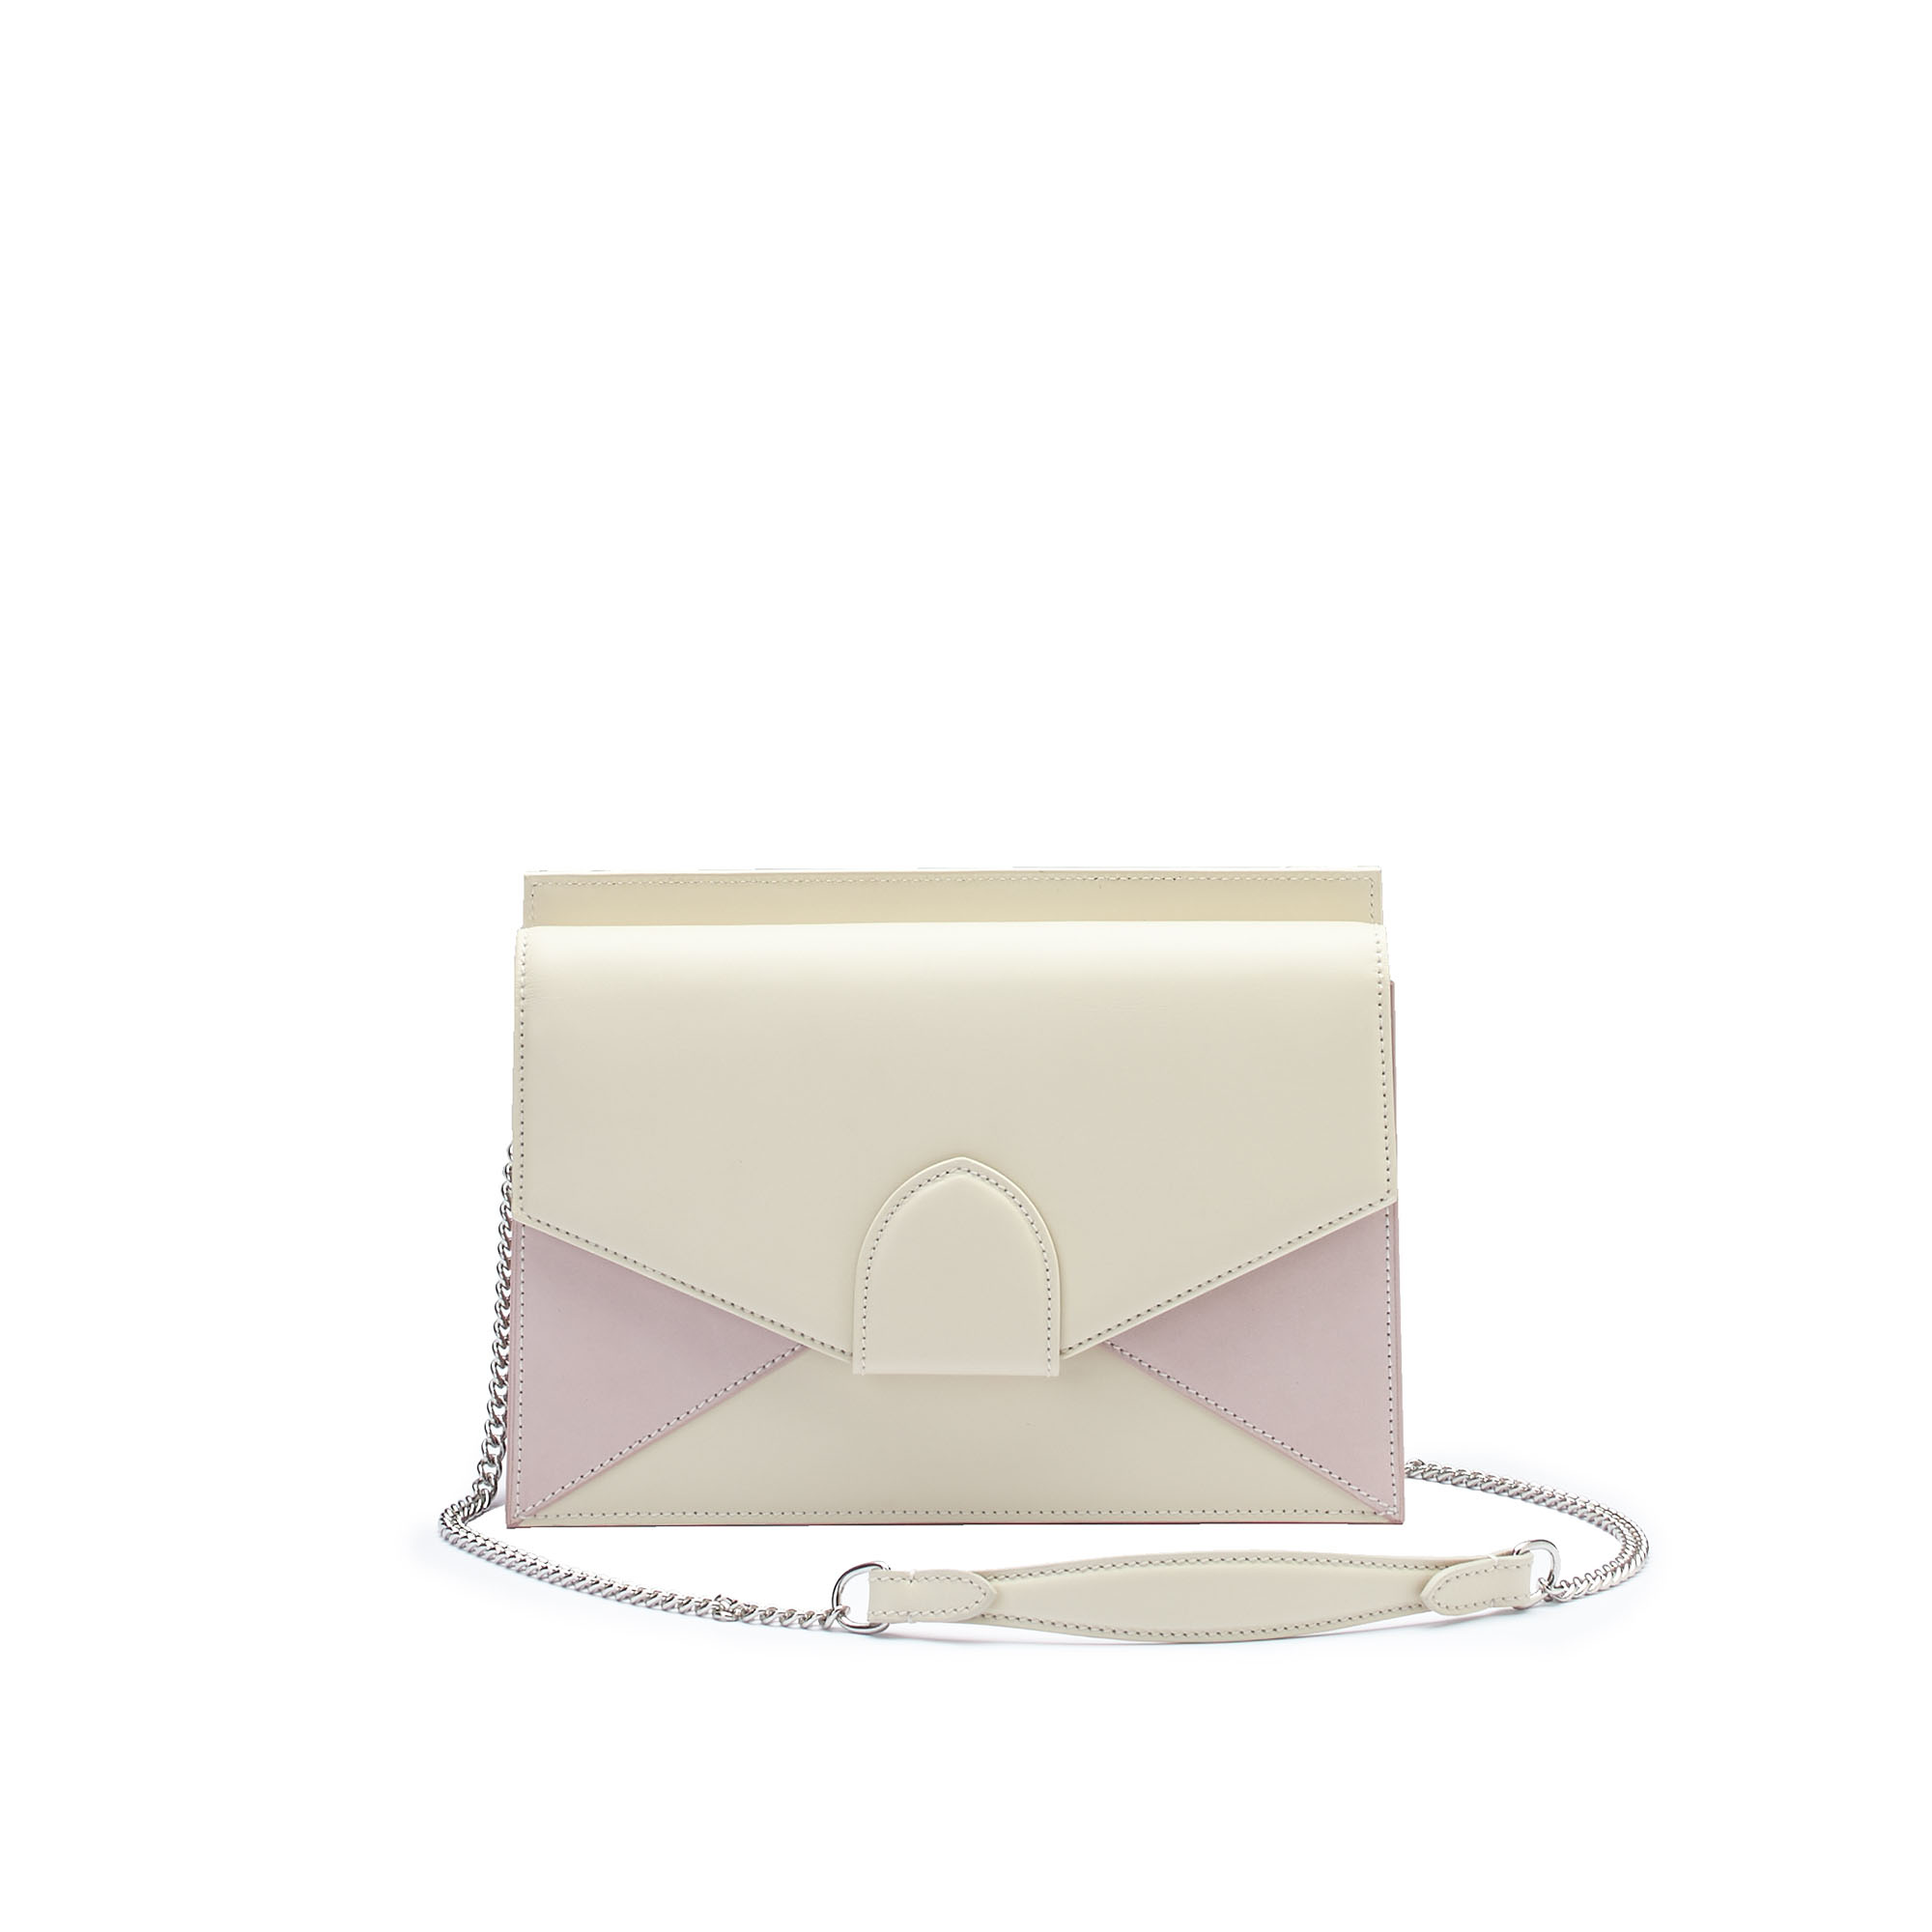 The ivory and pink french calf Dafne Chain bag by Bertoni 1949 01